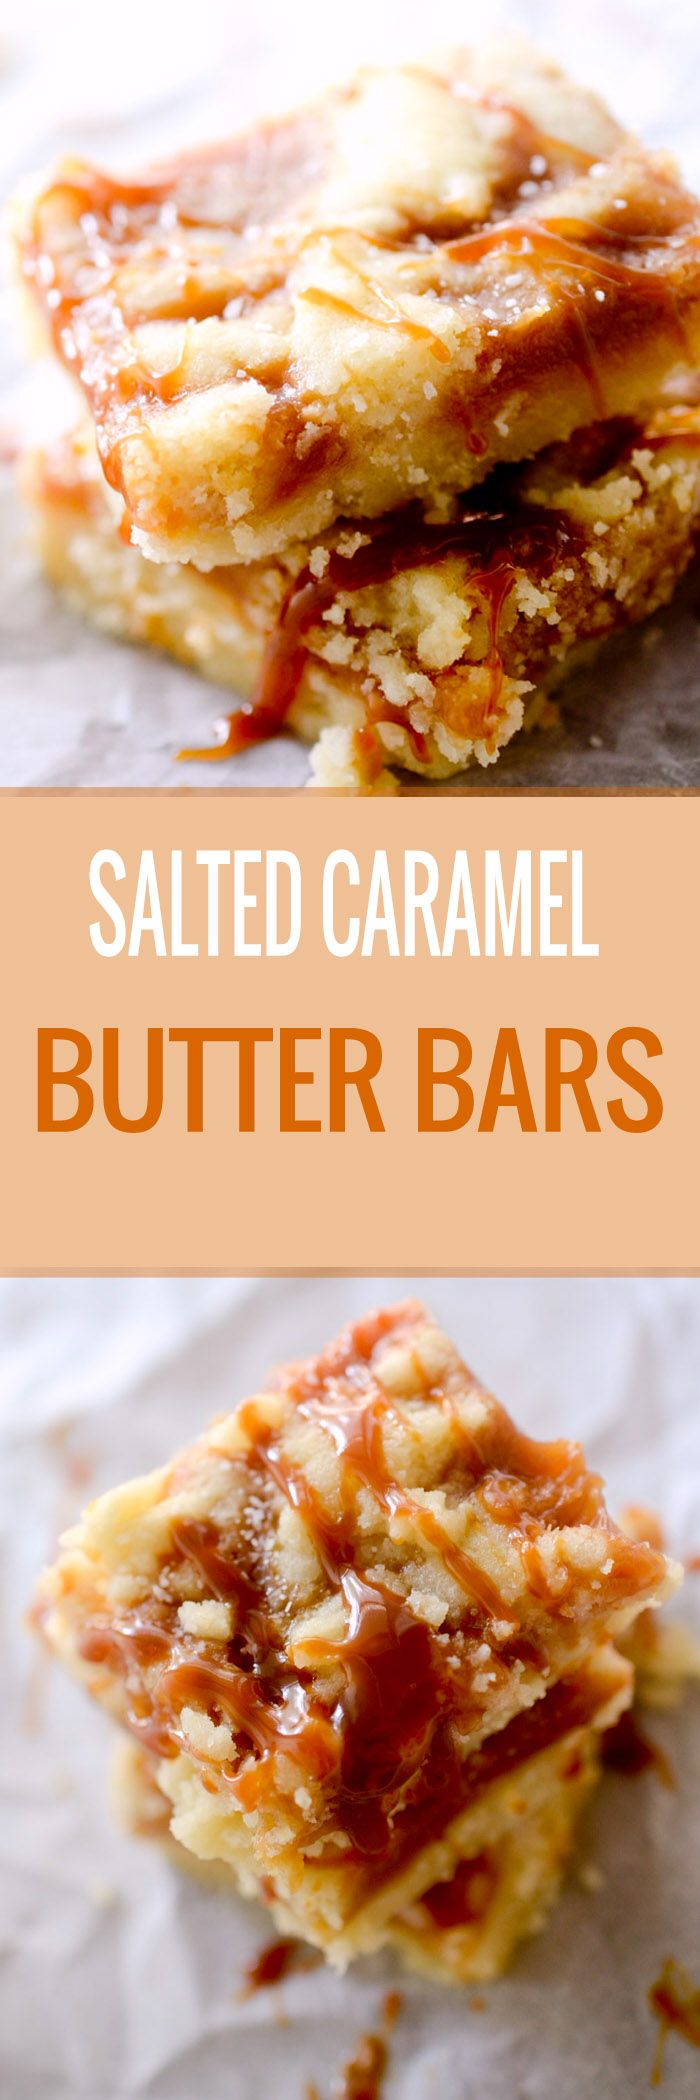 Salted Caramel Butter Bars - Recipe Diaries